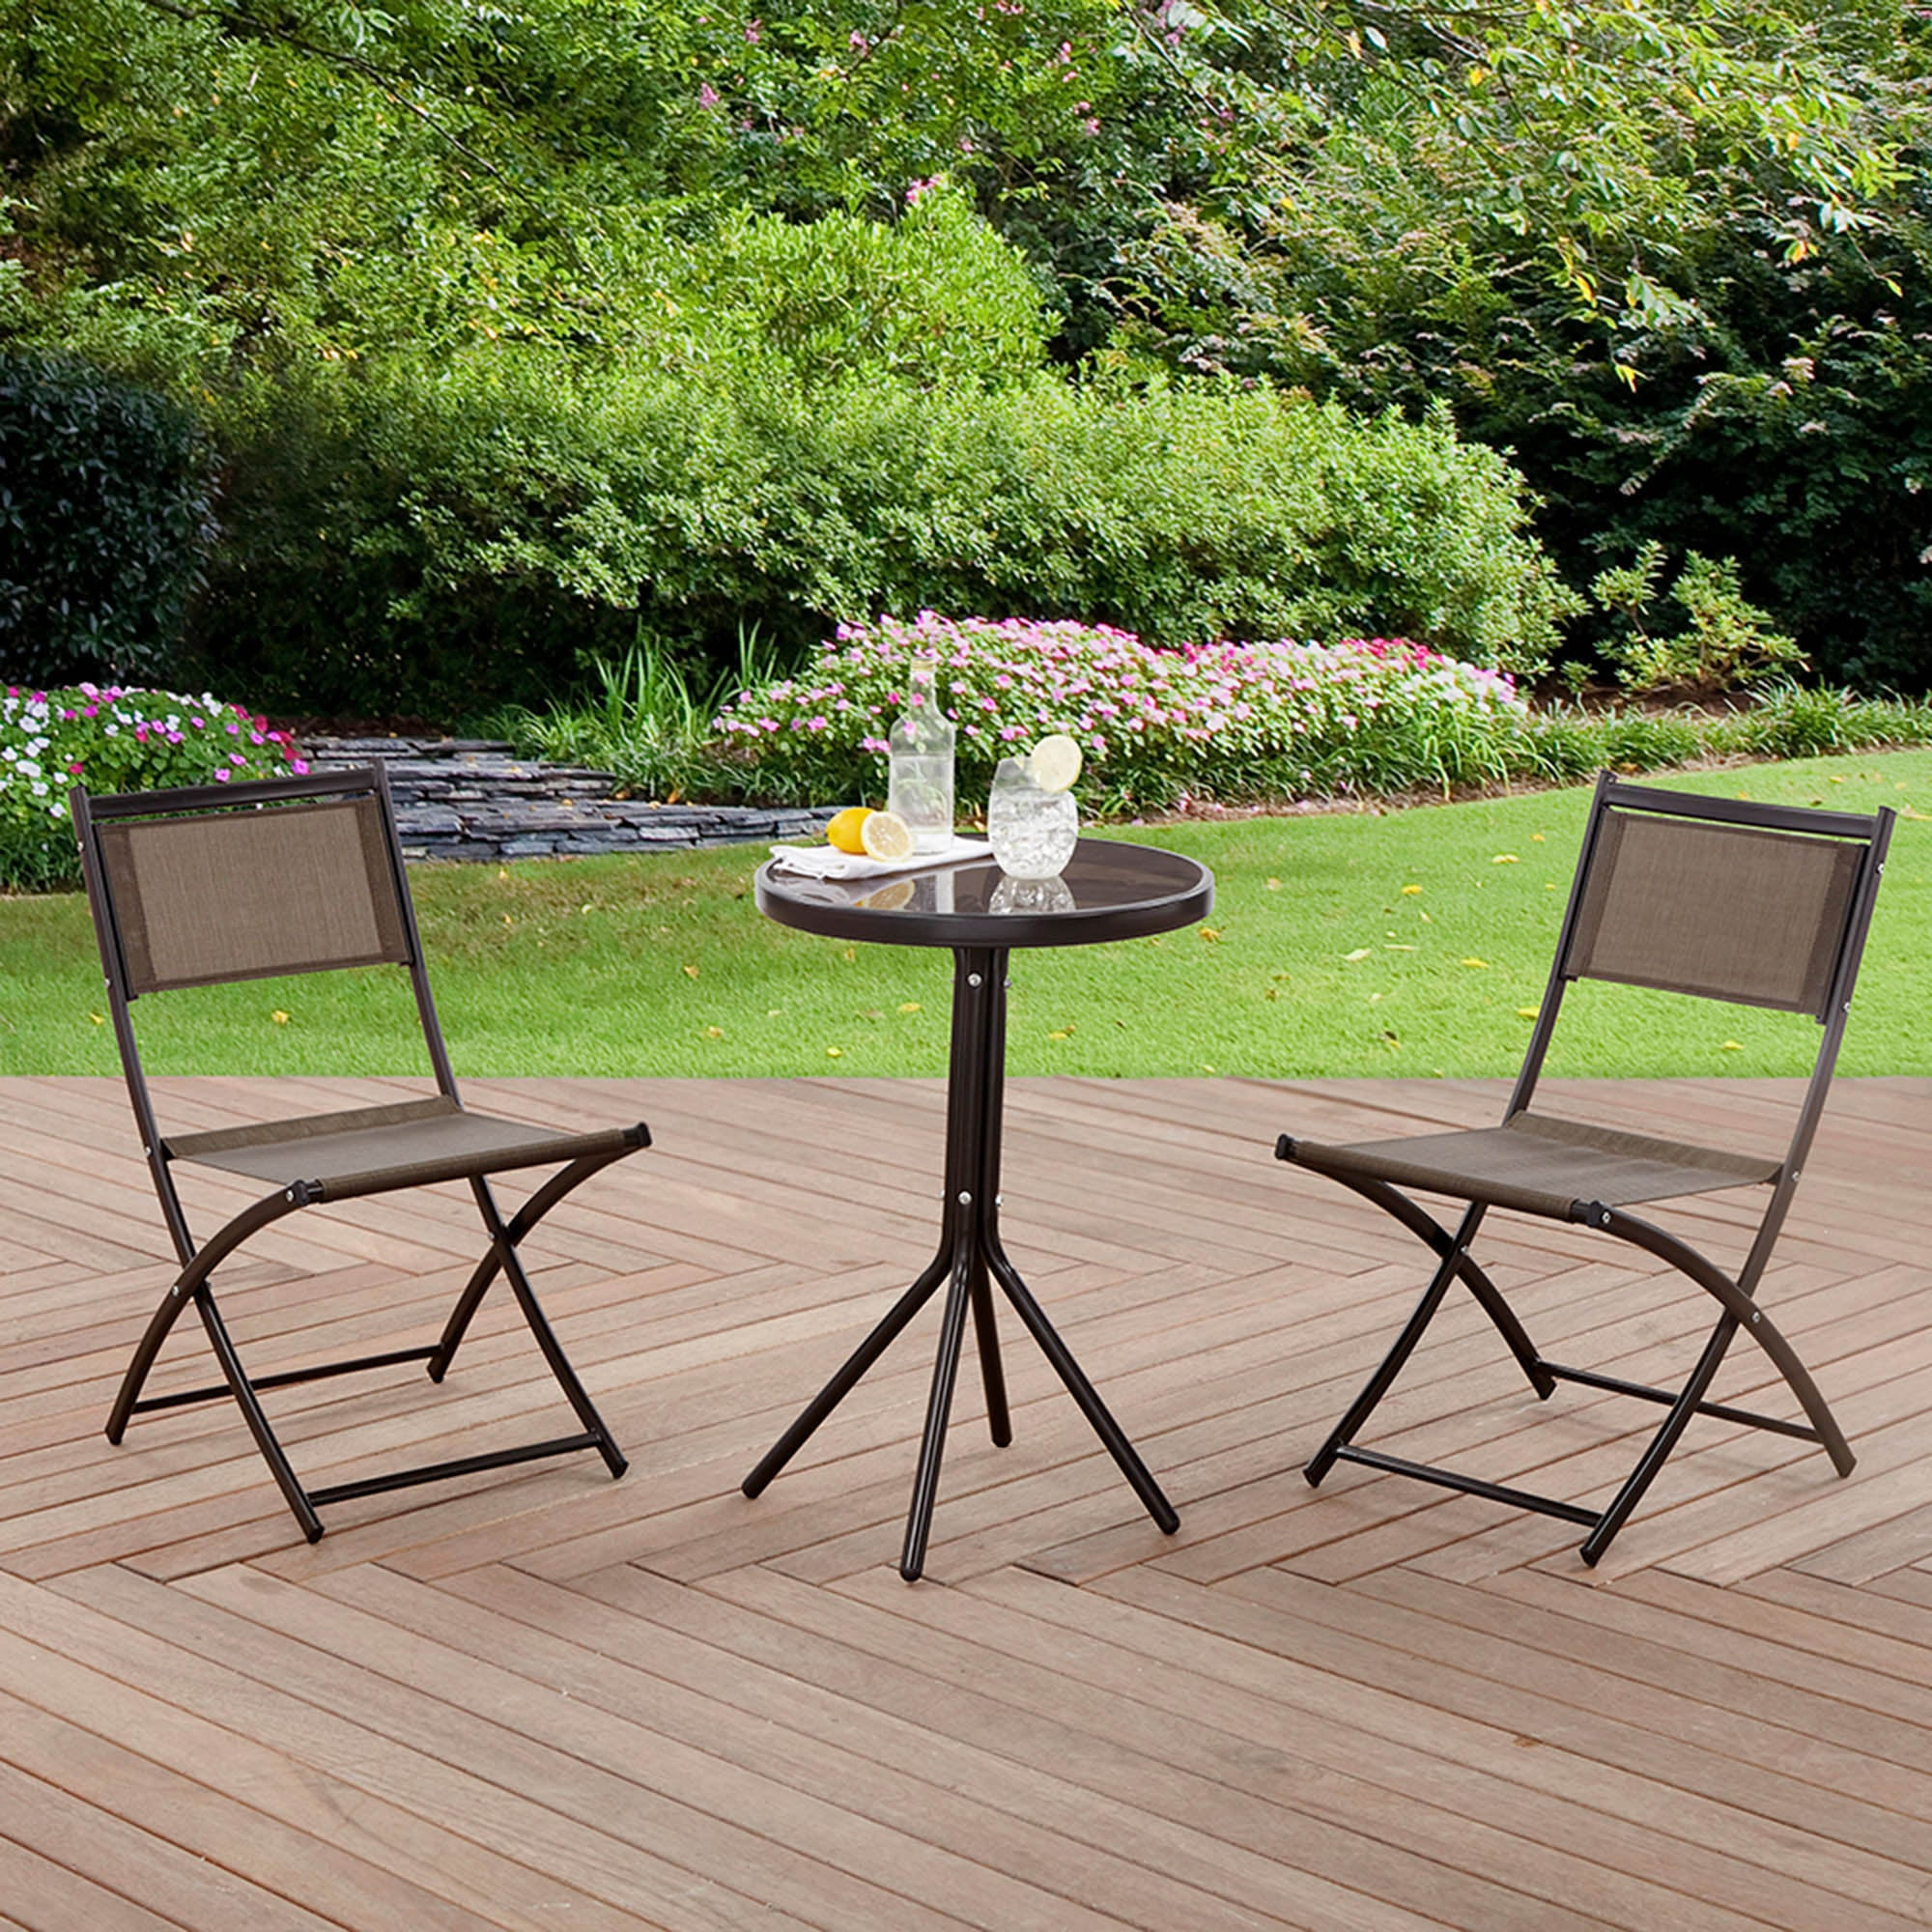 Buy Cheap Outdoor Table And Chairs Compare Sheds